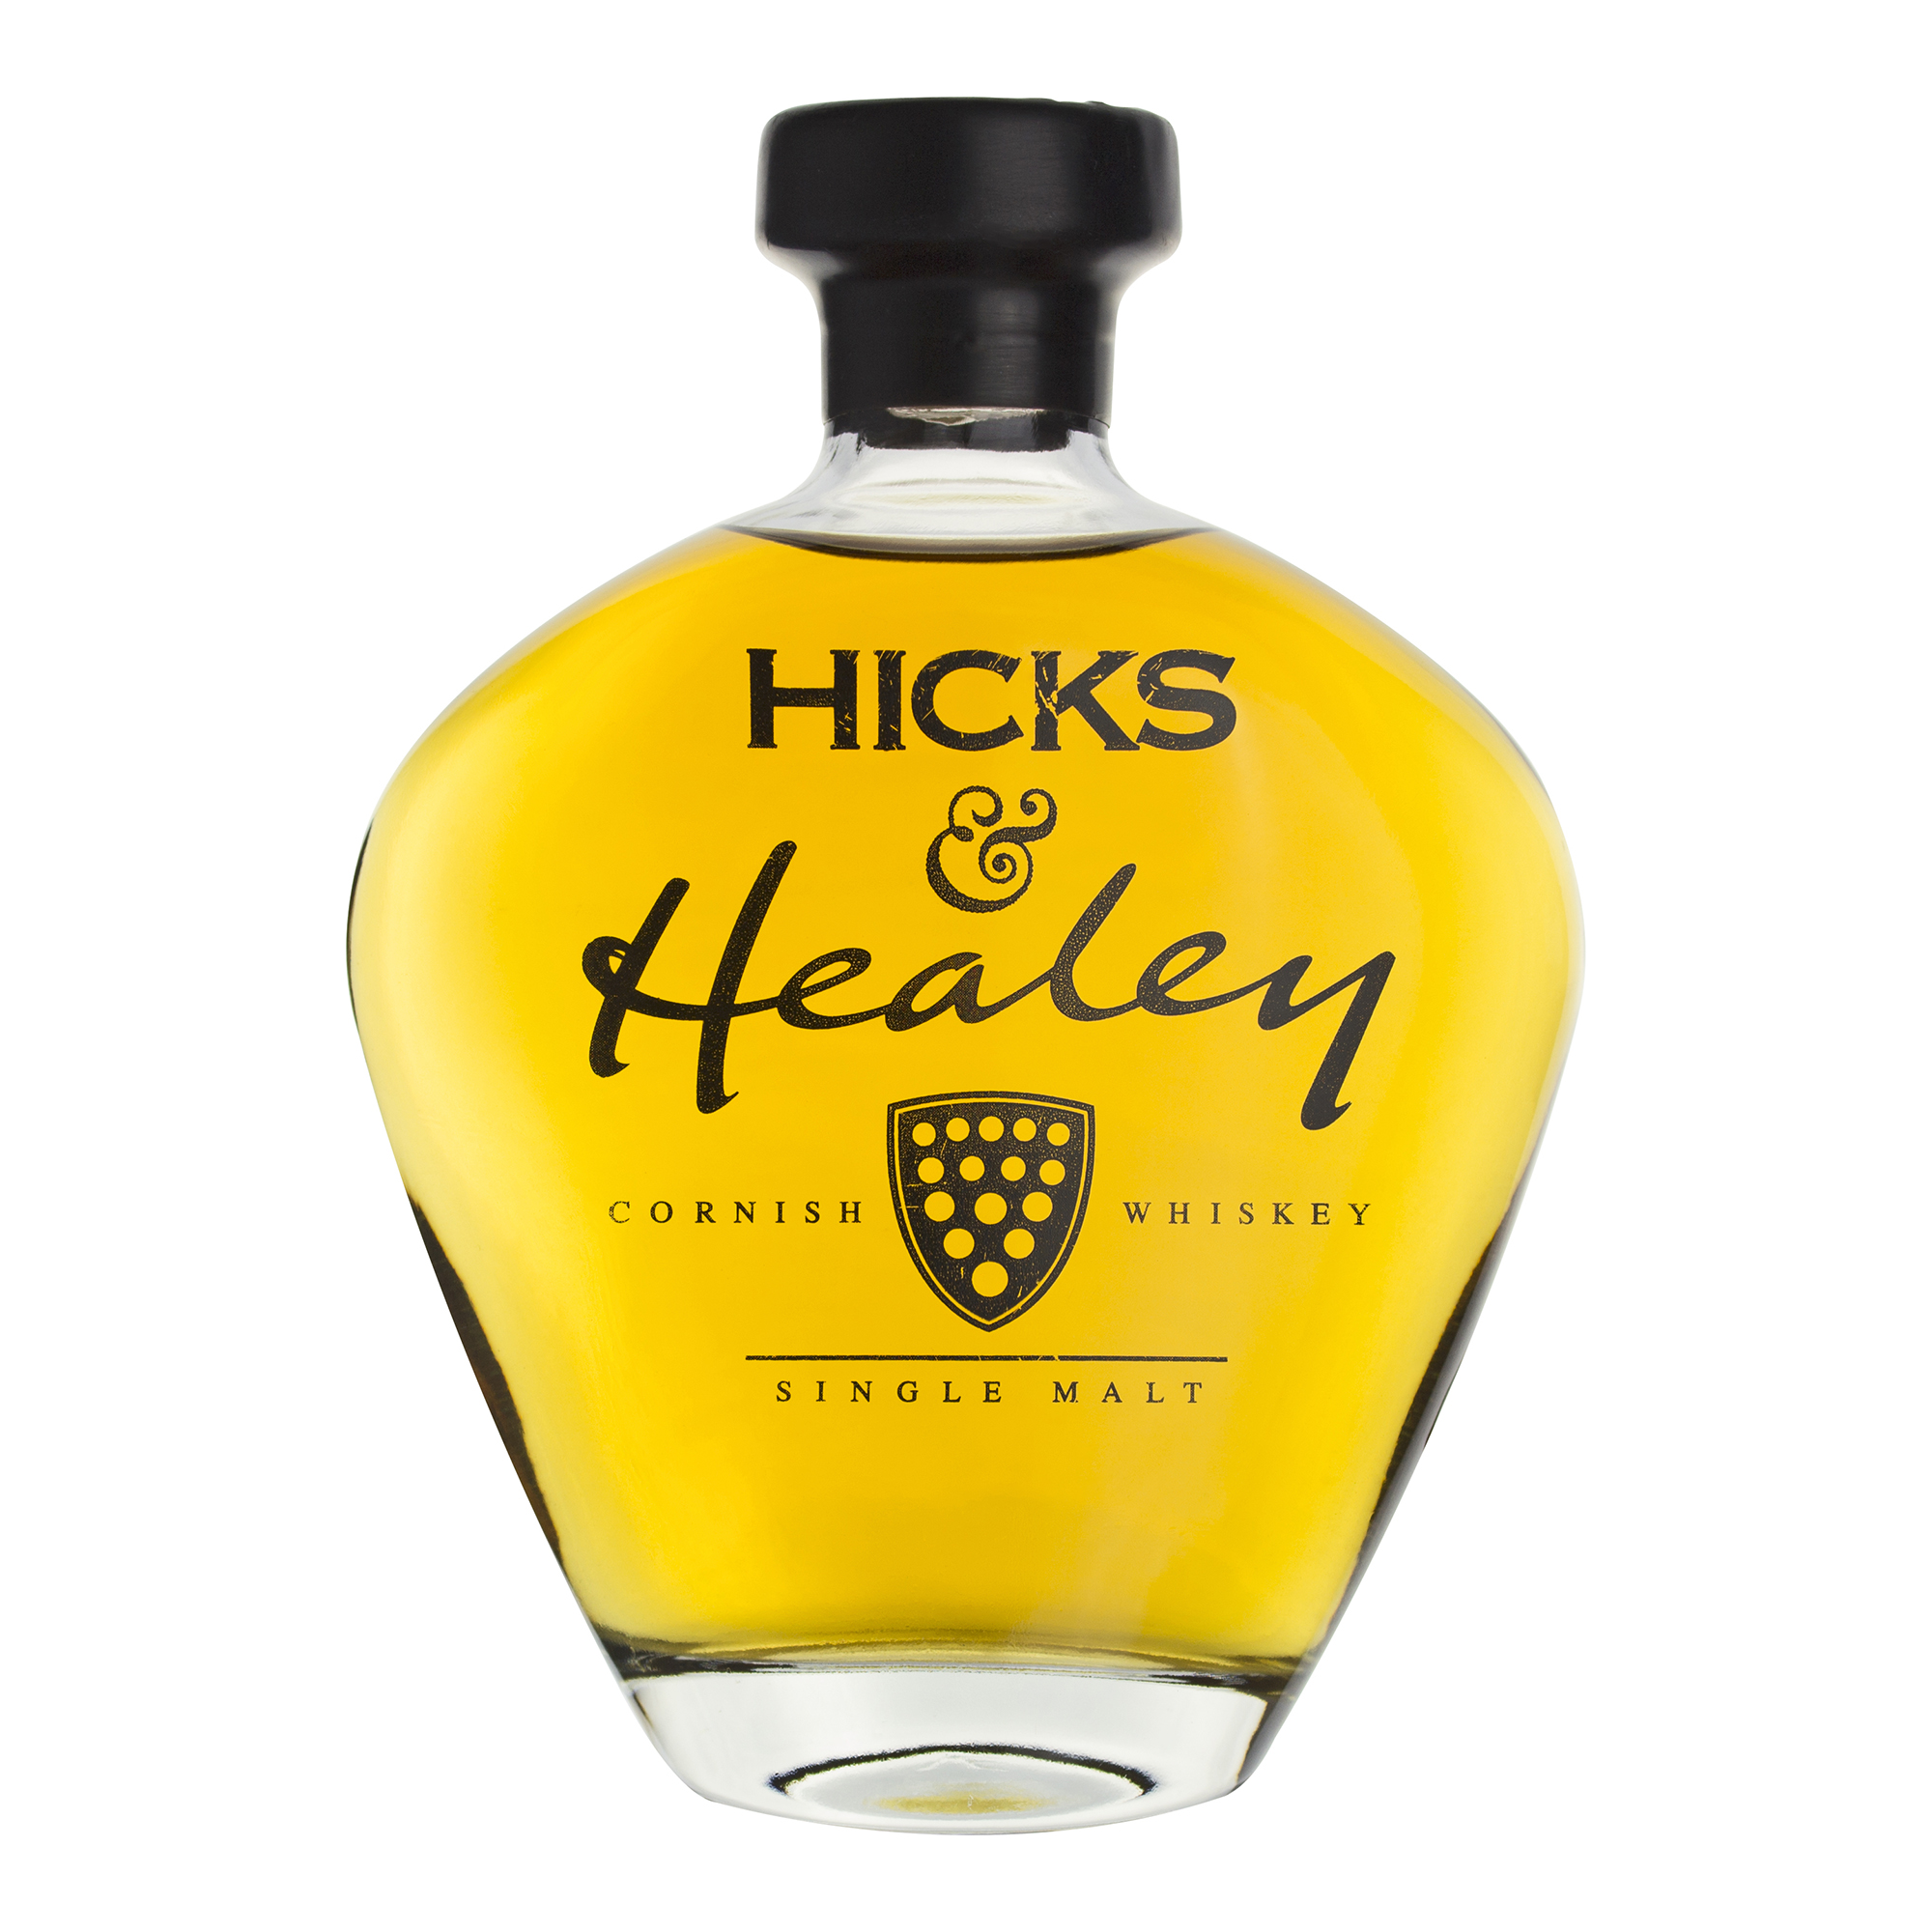 Hicks & Healey Cornish Whiskey